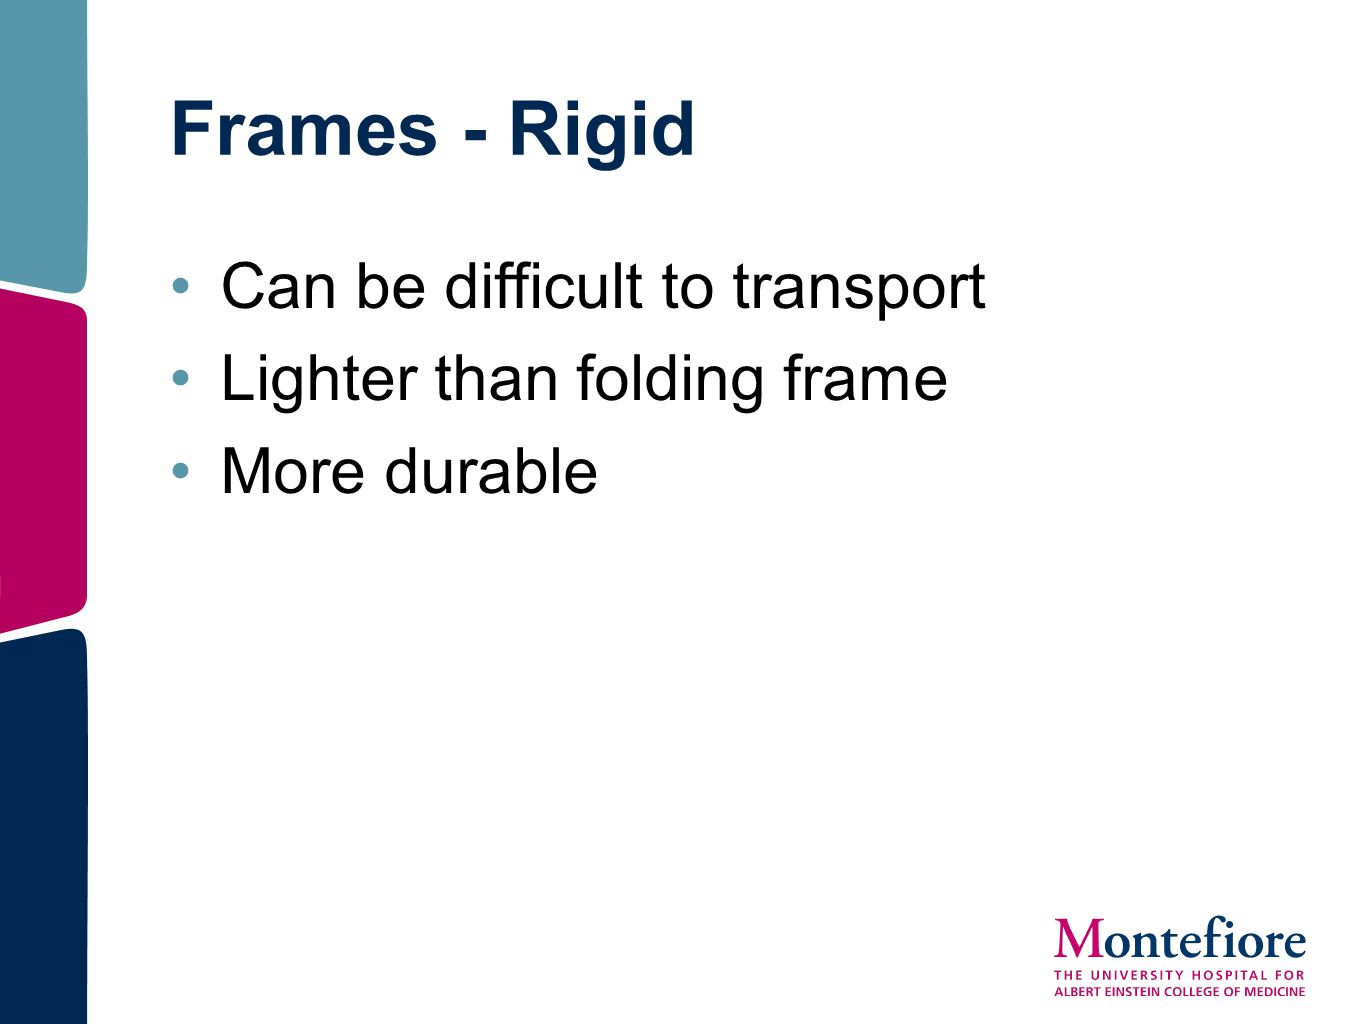 Can be difficult to transport Lighter than folding frame More durable